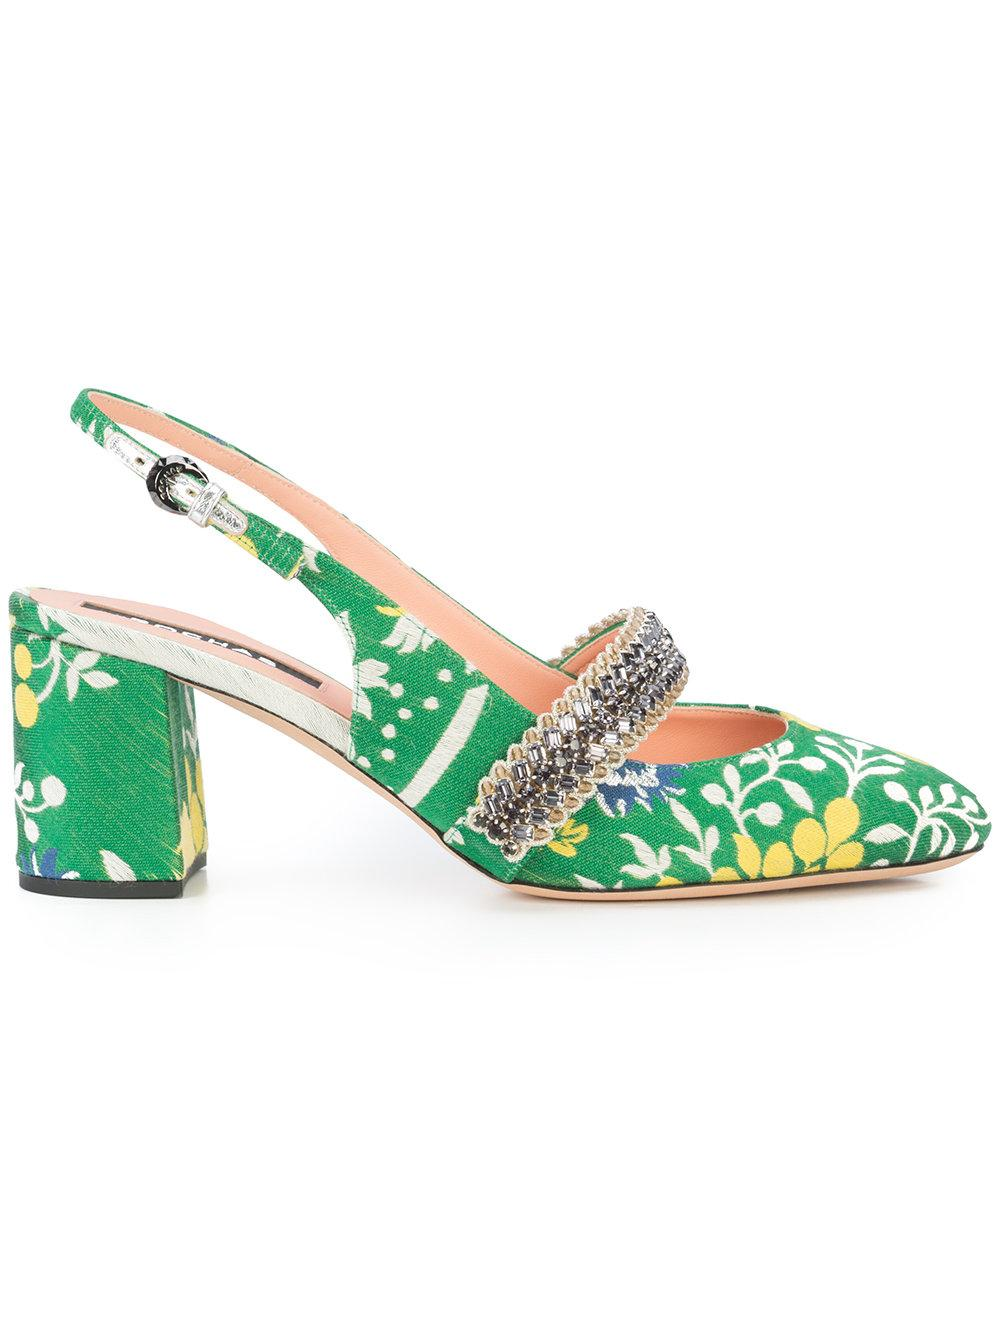 Rochas Patterned Slingback Sandals